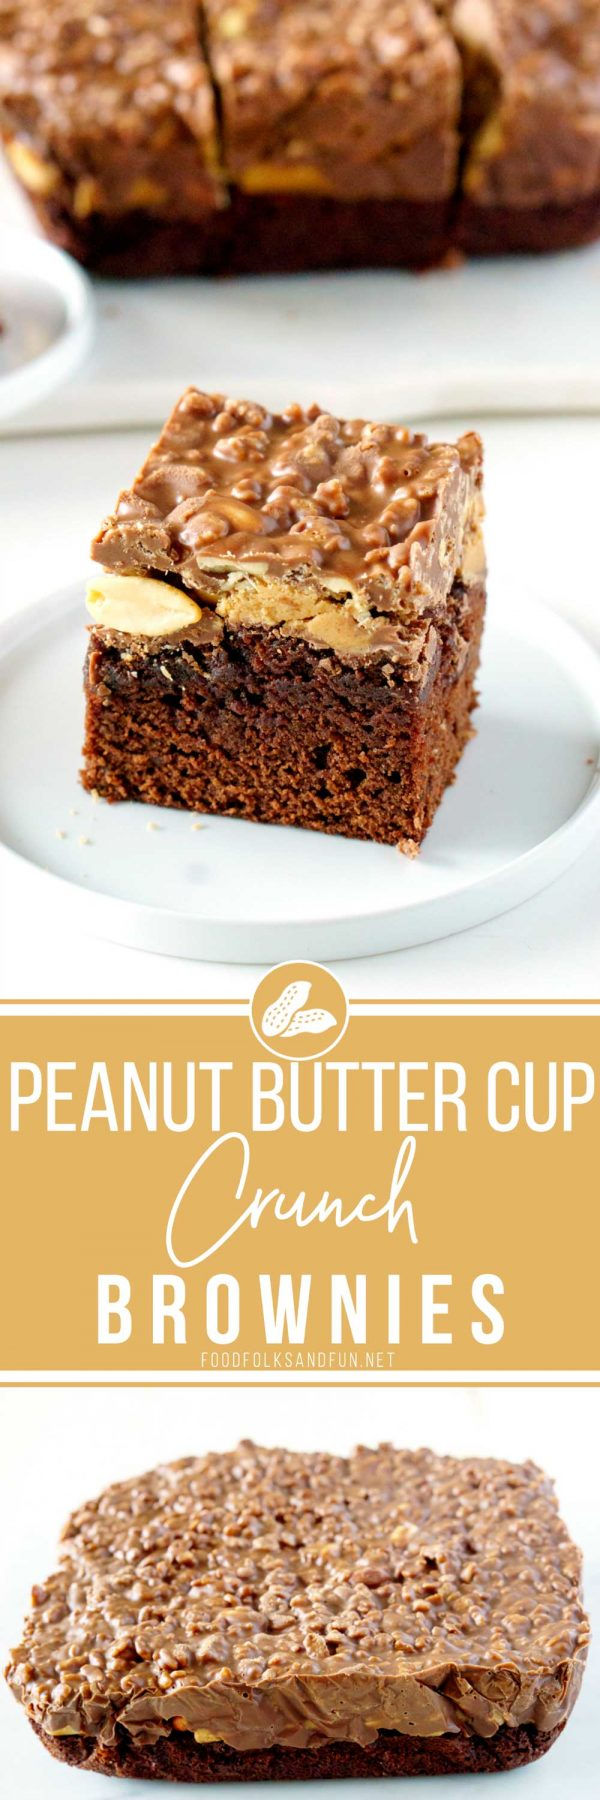 How to Make Peanut Butter Cup Crunch Brownies